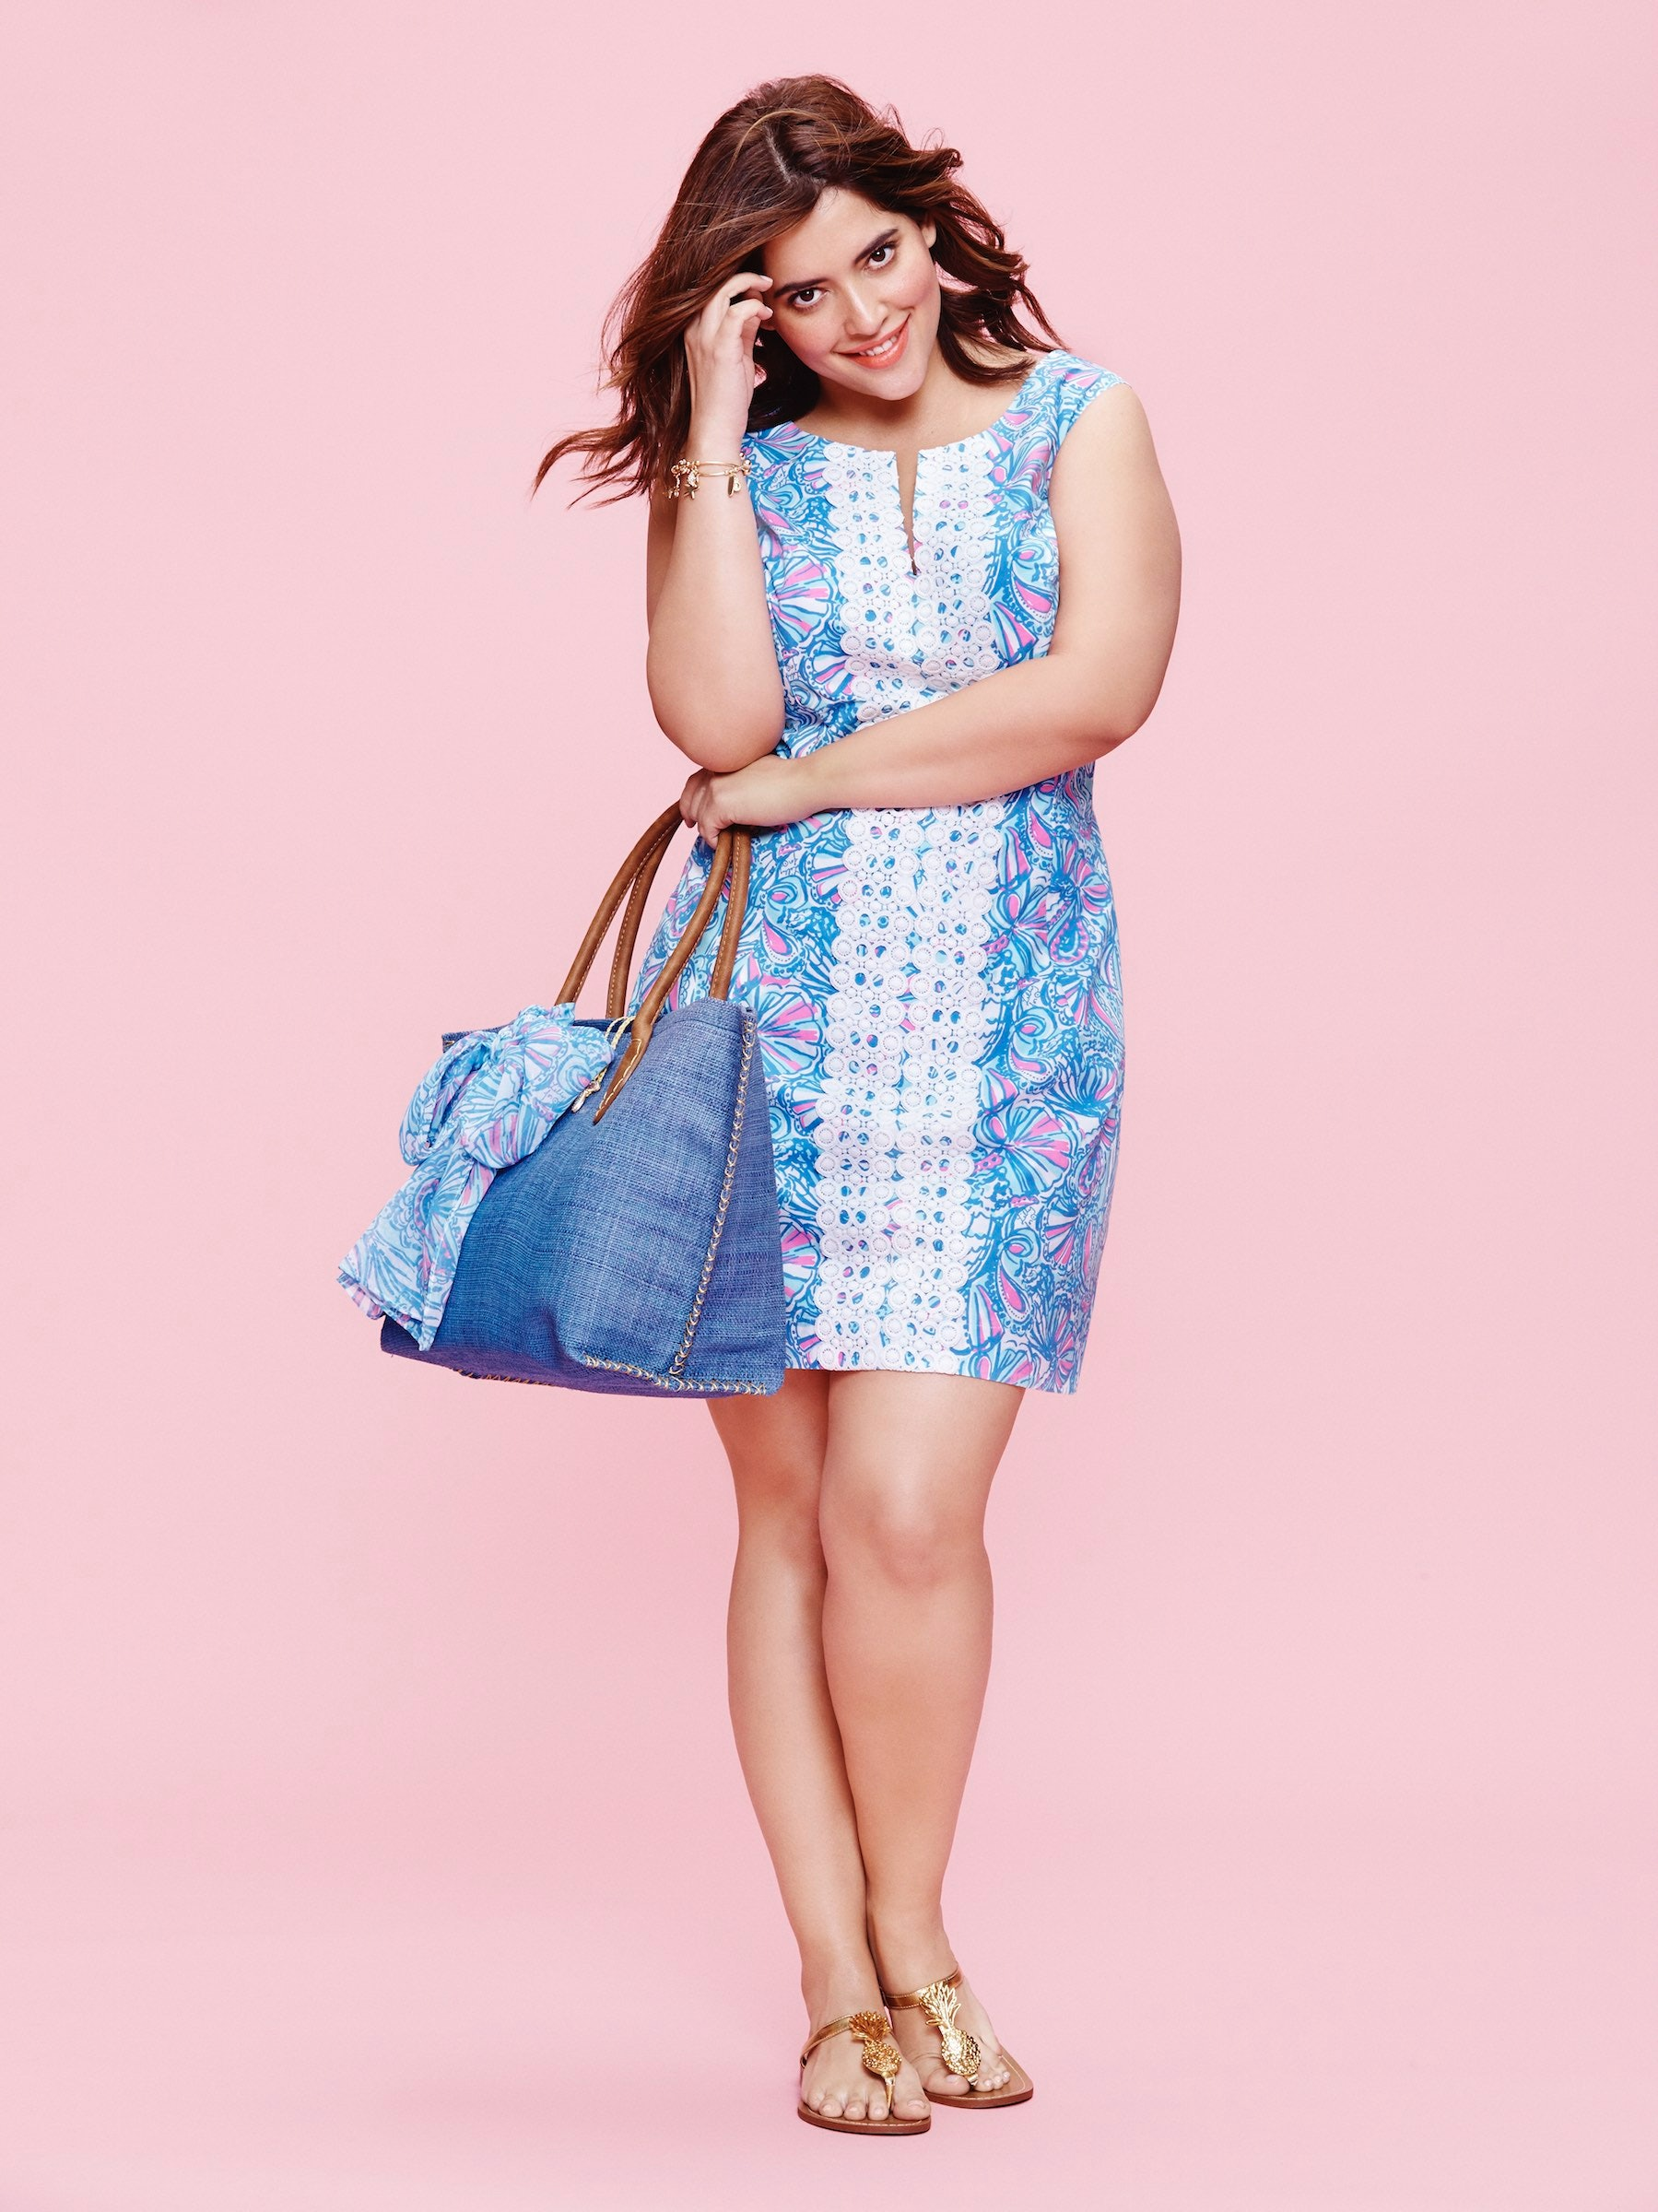 be08828d891 The Lilly Pulitzer x Target Lookbook Is Here